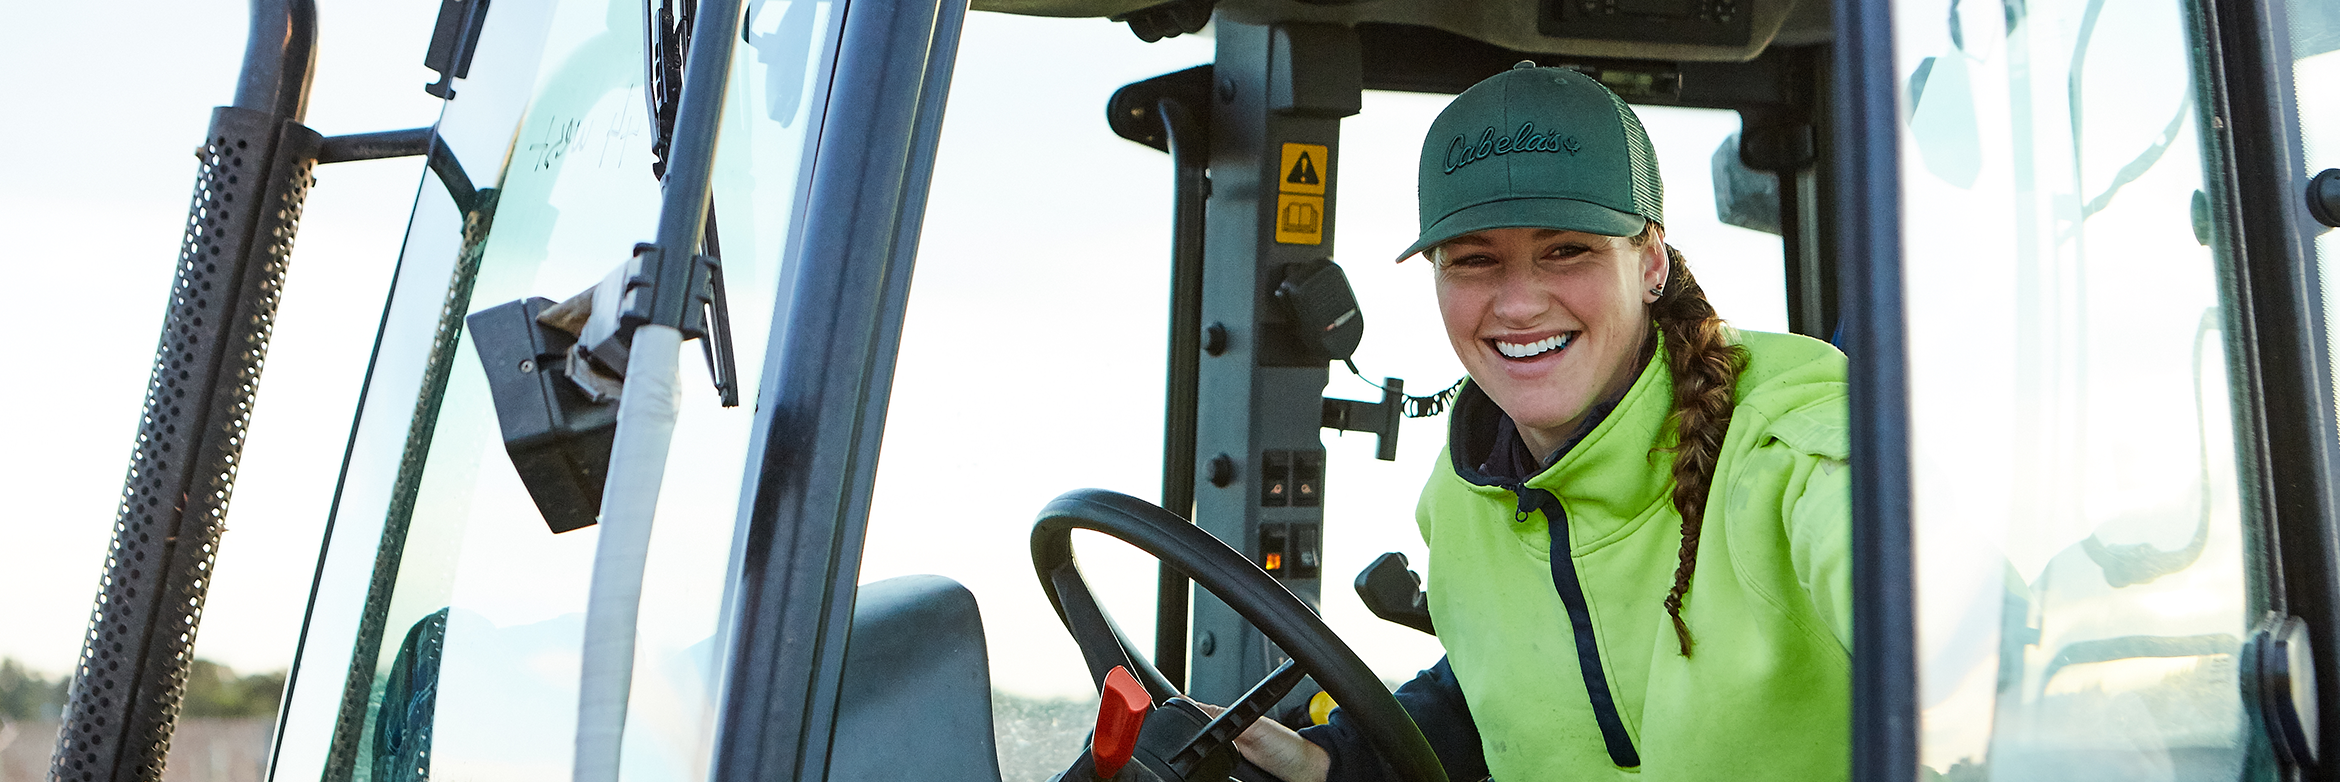 CMV Farms employee on tractor - CMV Group